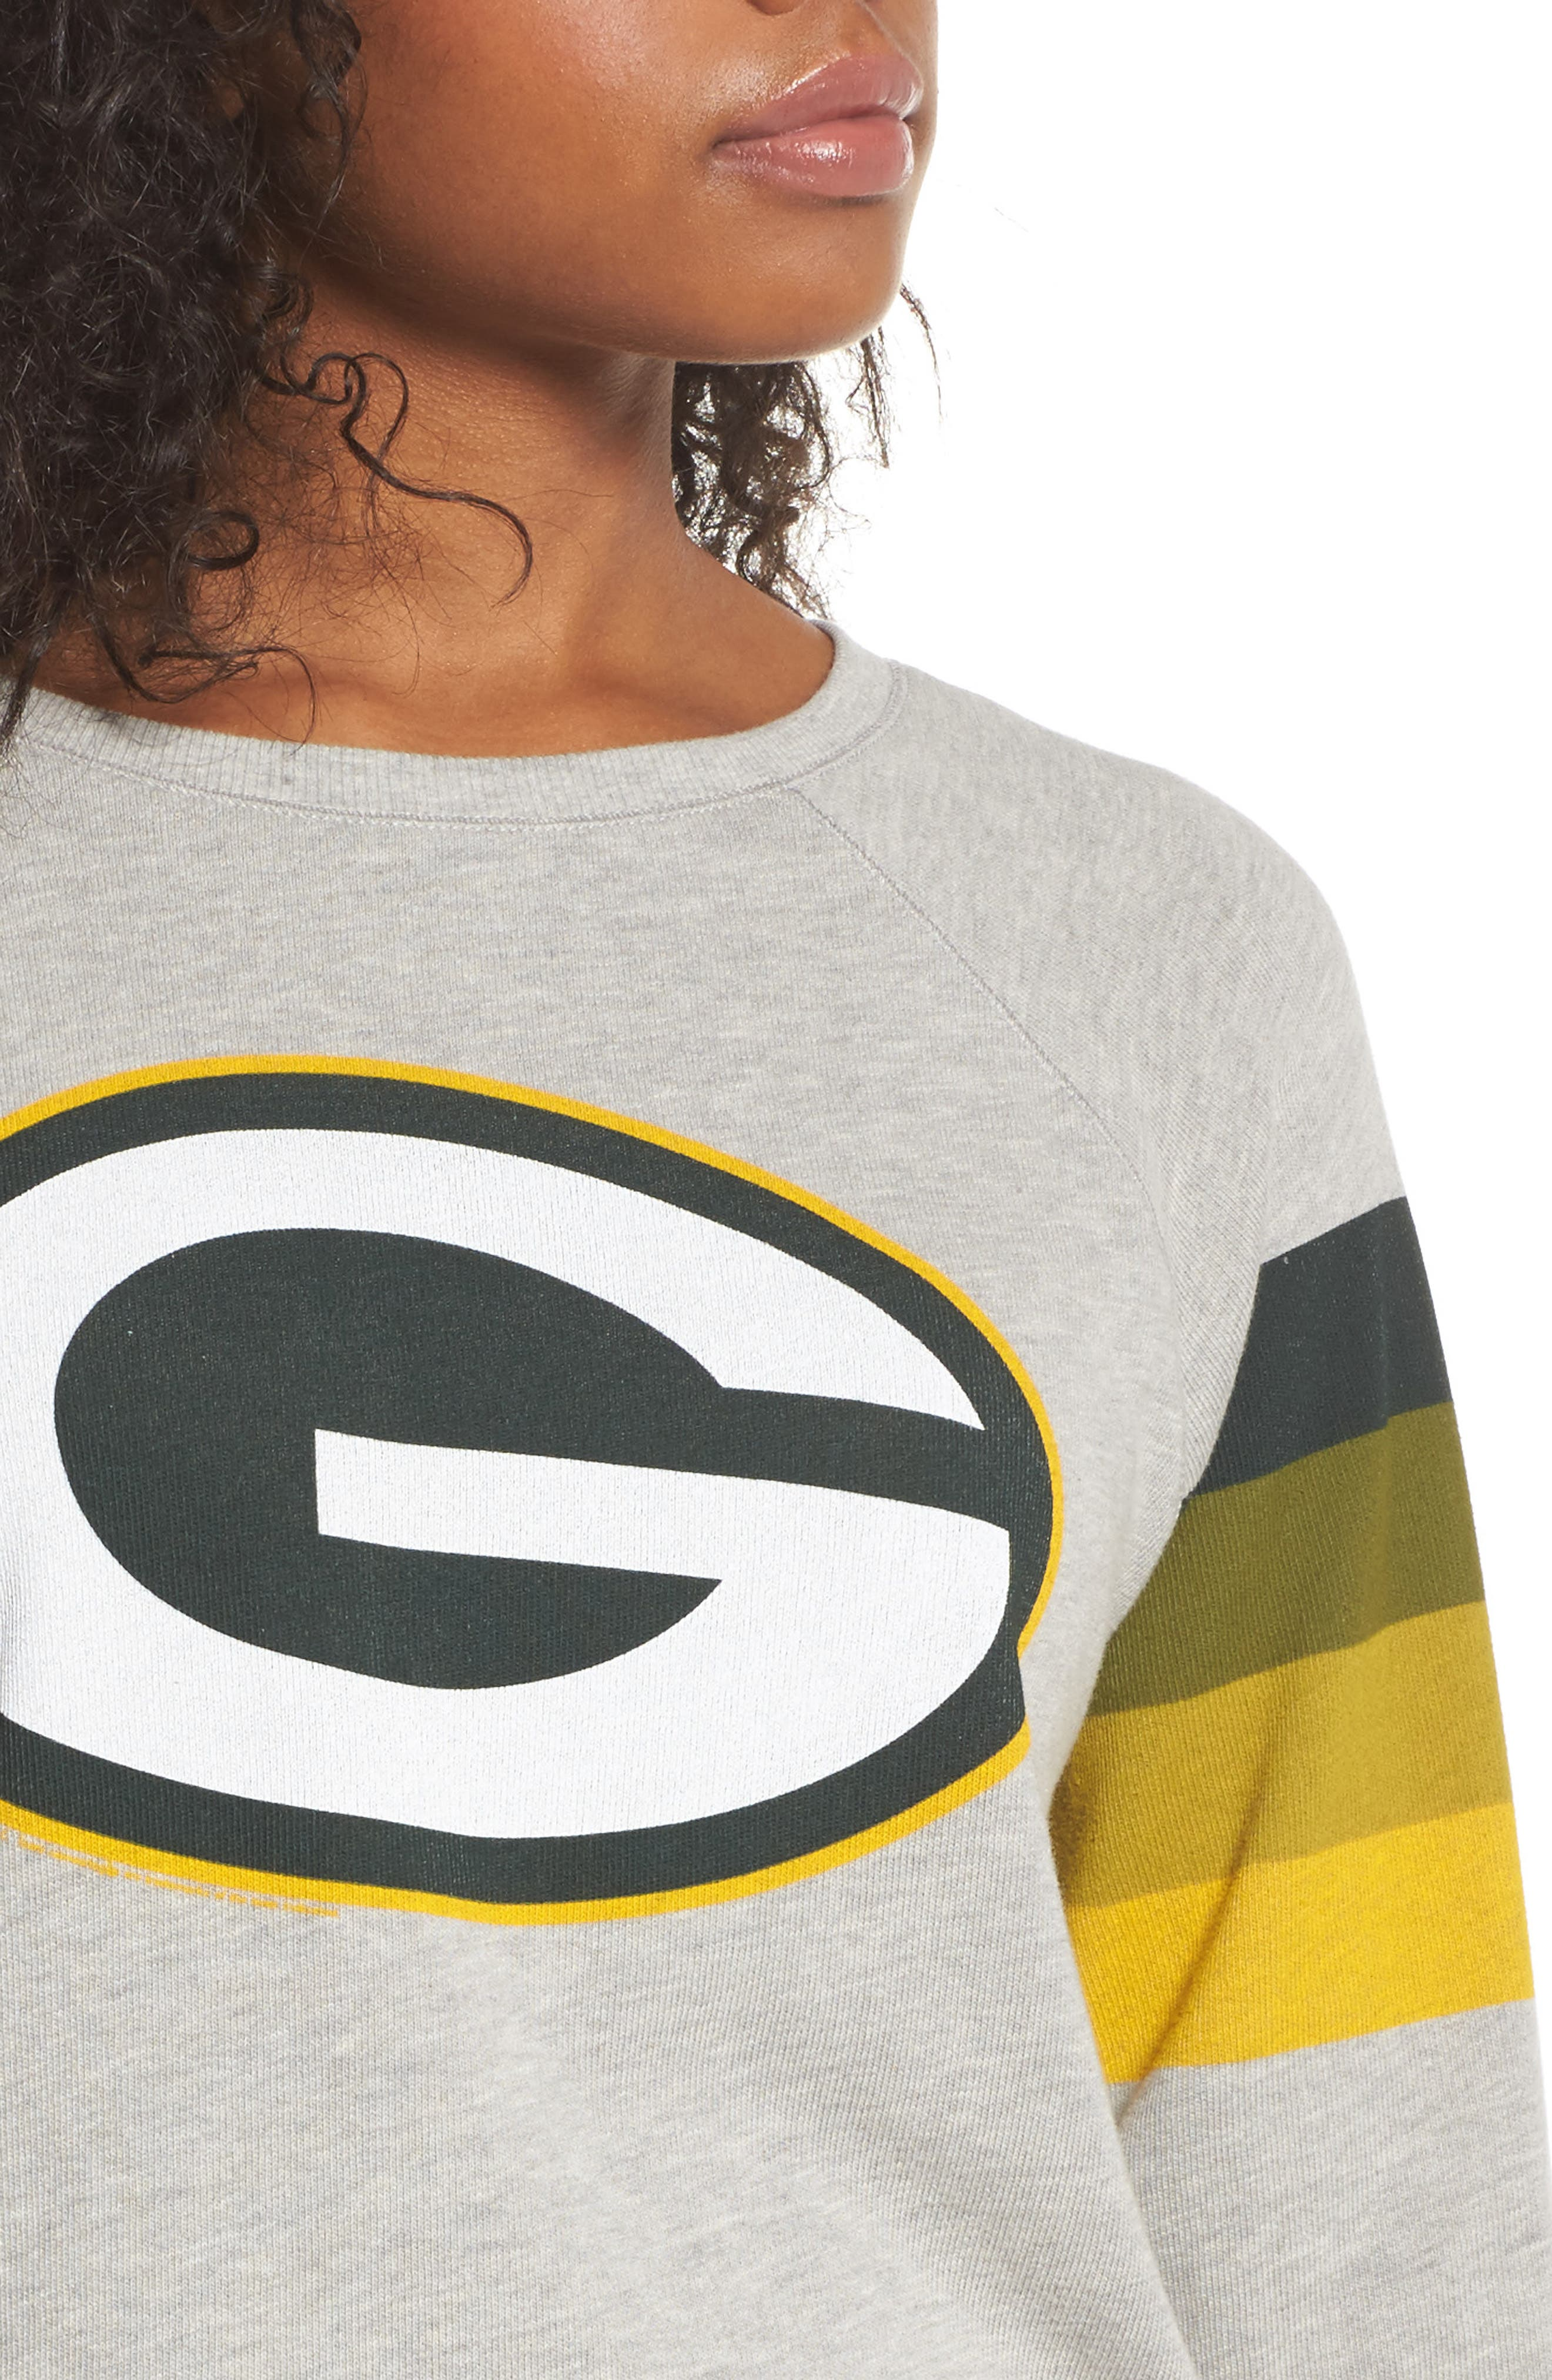 NF Green Bay Packers Hacci Sweatshirt,                             Alternate thumbnail 4, color,                             Dove Heather Grey